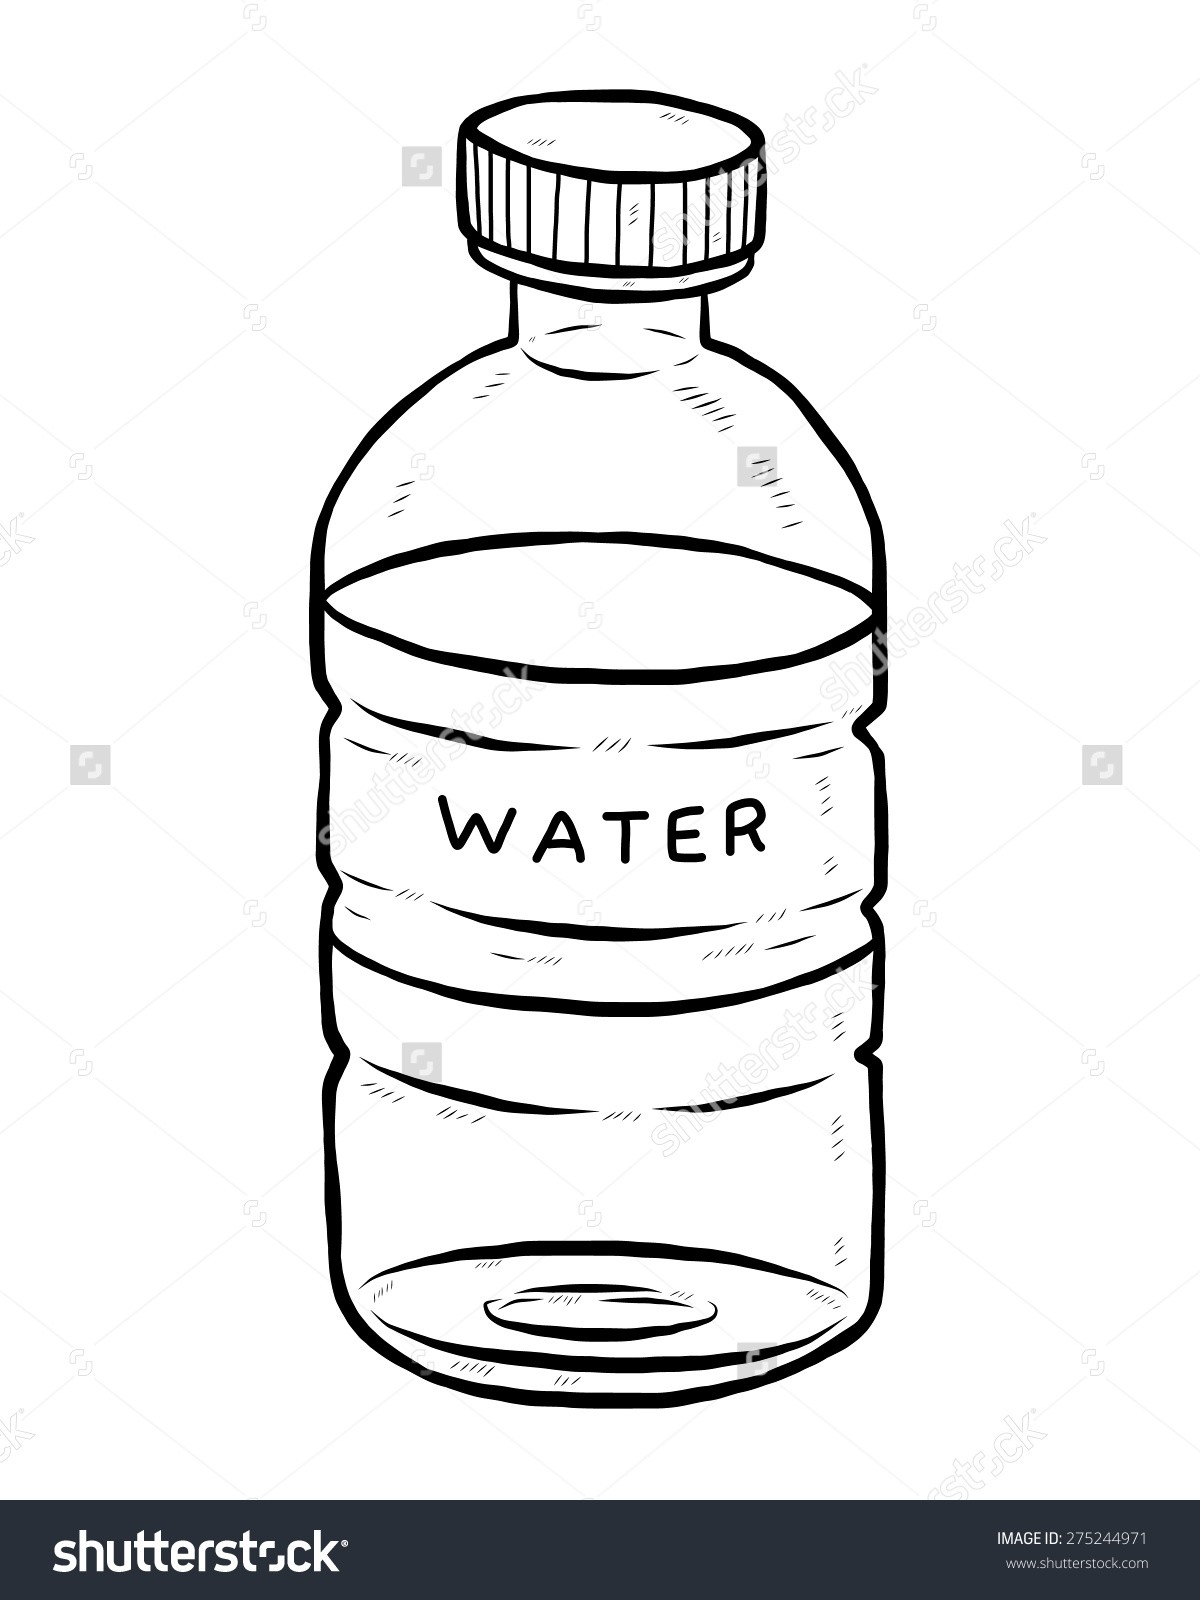 Black and white furniture. Bottle clipart water bottle